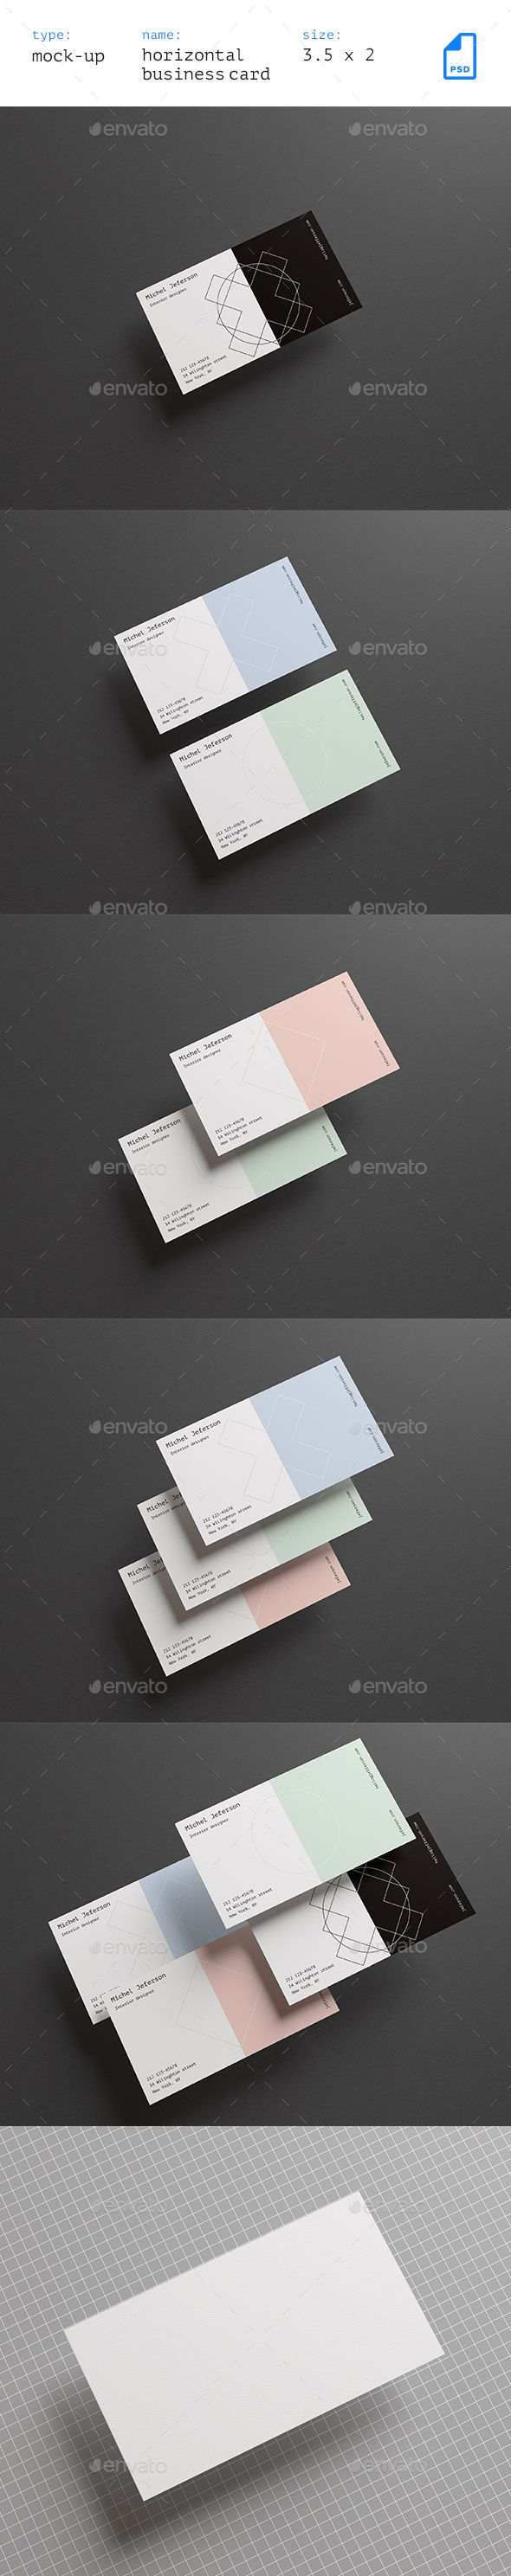 718 best business card mockup images on pinterest miniatures horizontal business cards mock up vol 2 reheart Gallery